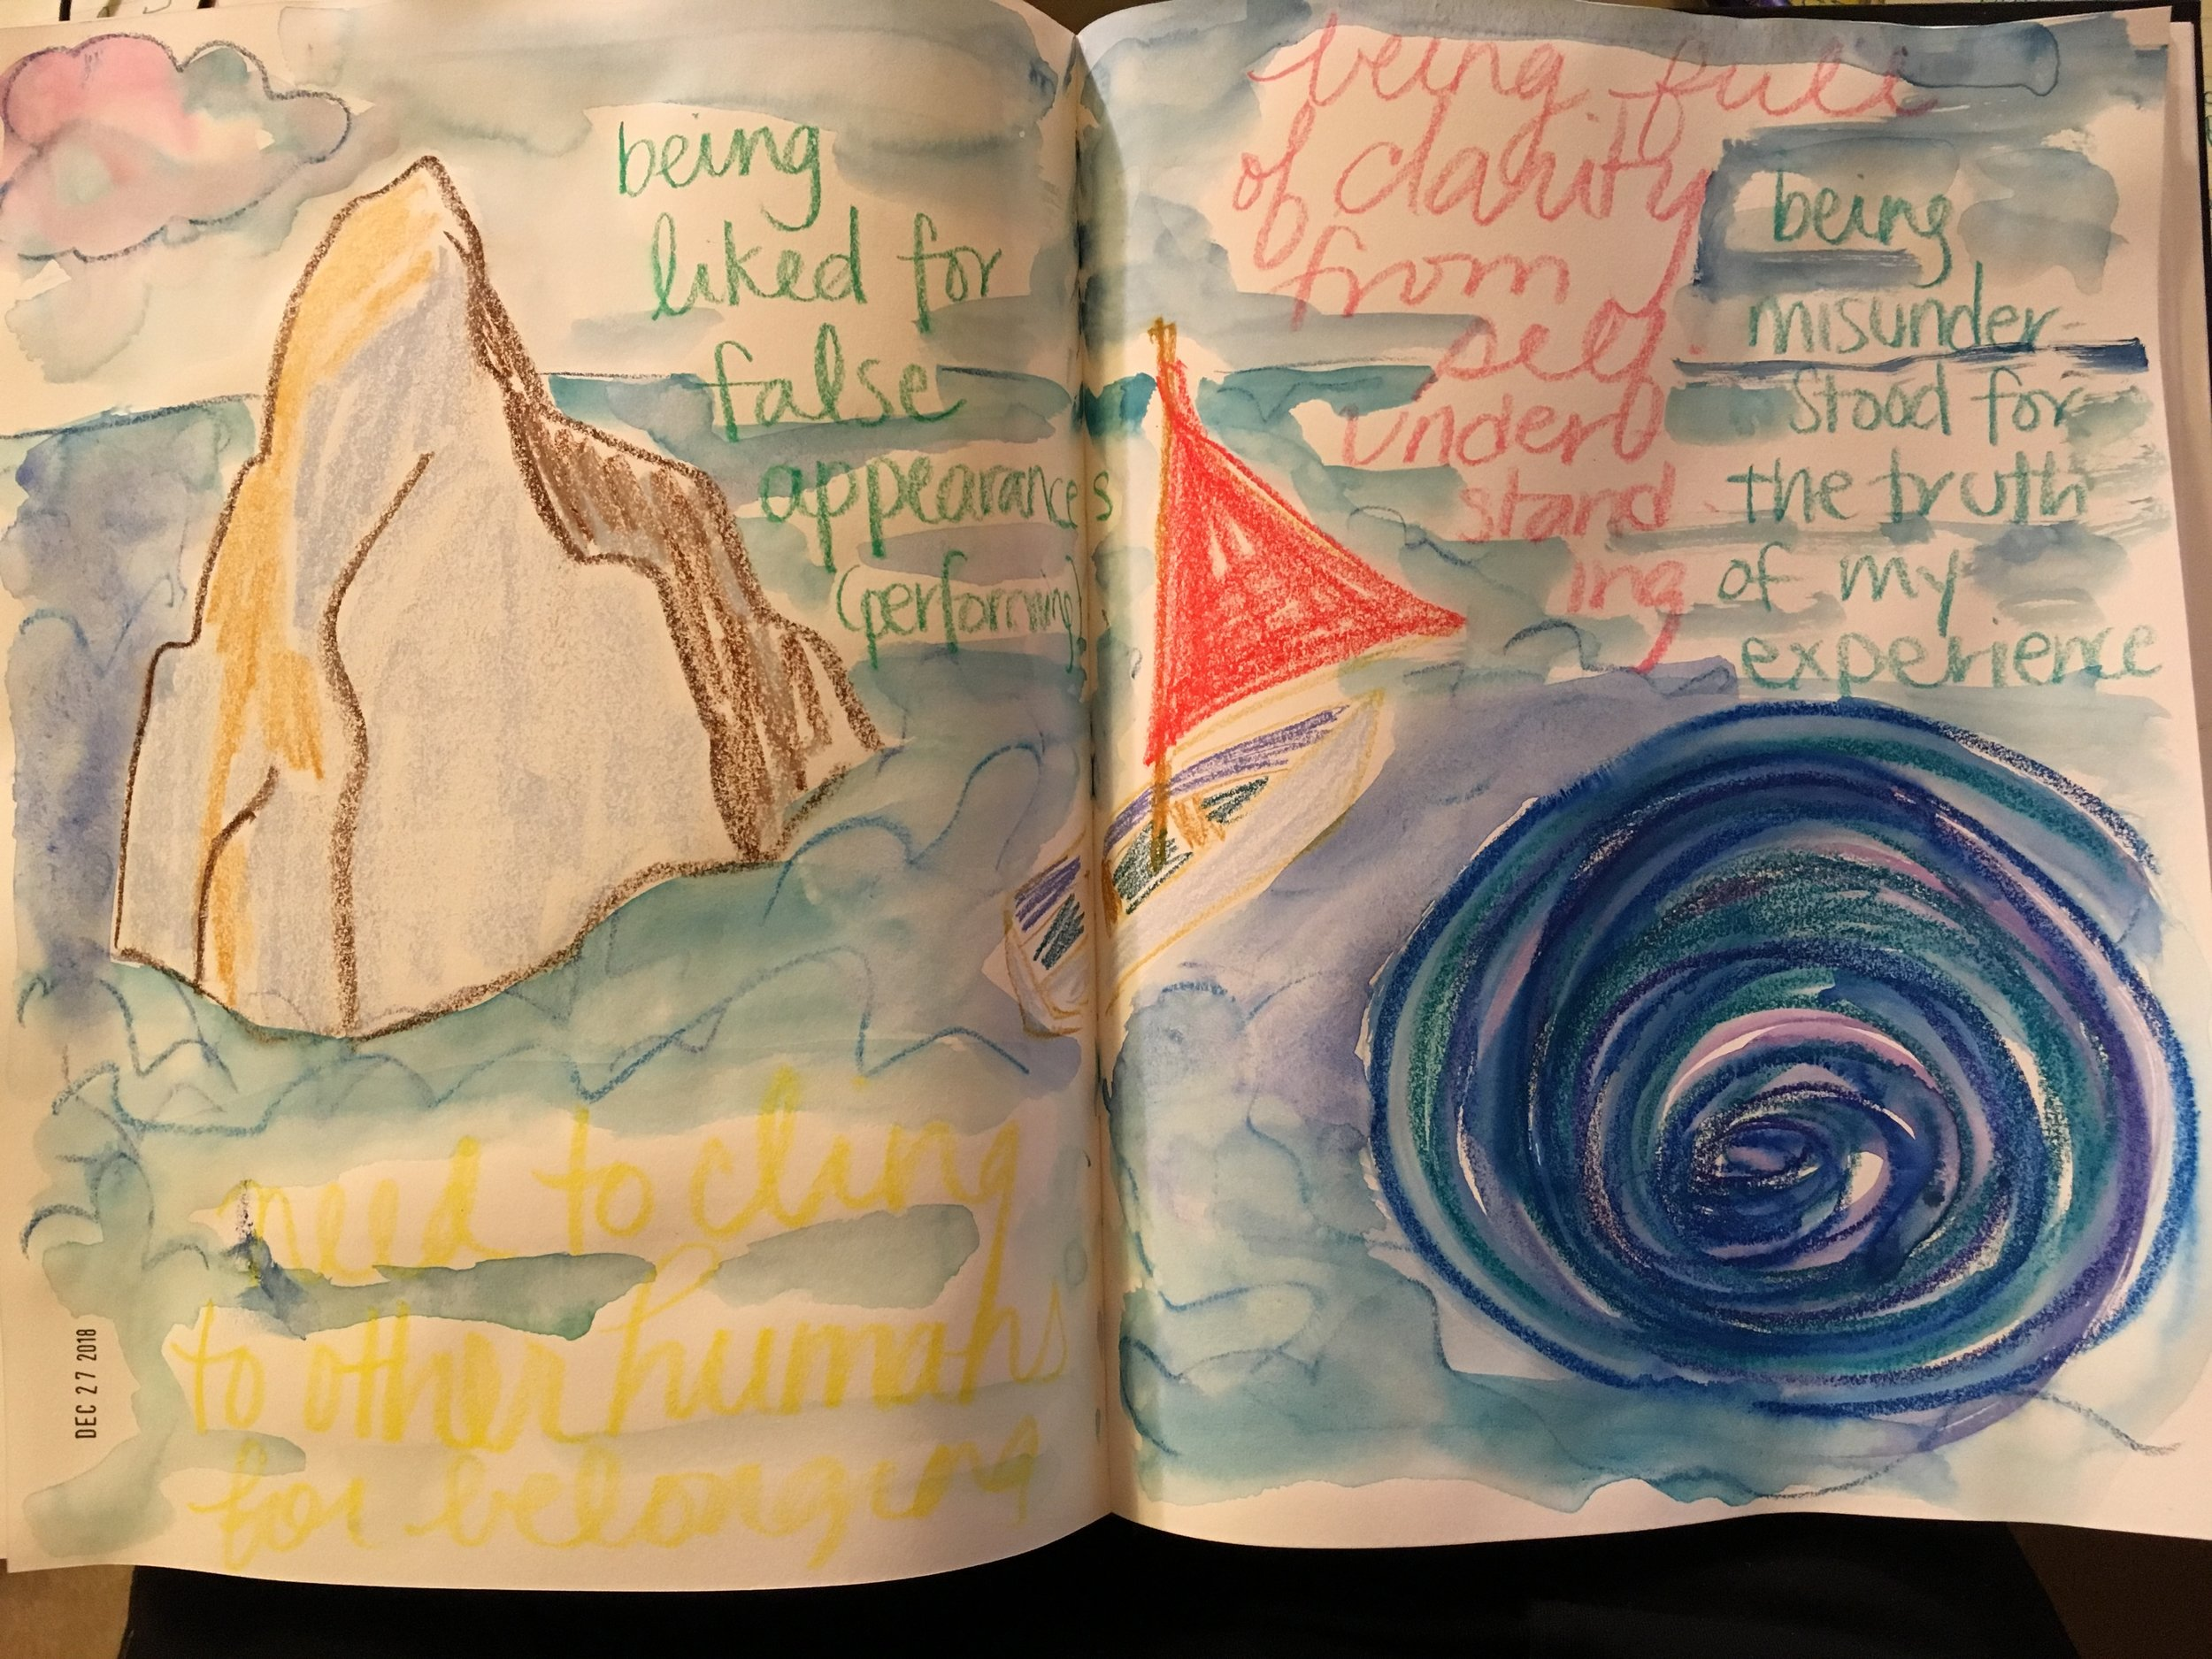 My sketchbook image of Scylla & Charybdis, mentioned later in this video and audio podcast.